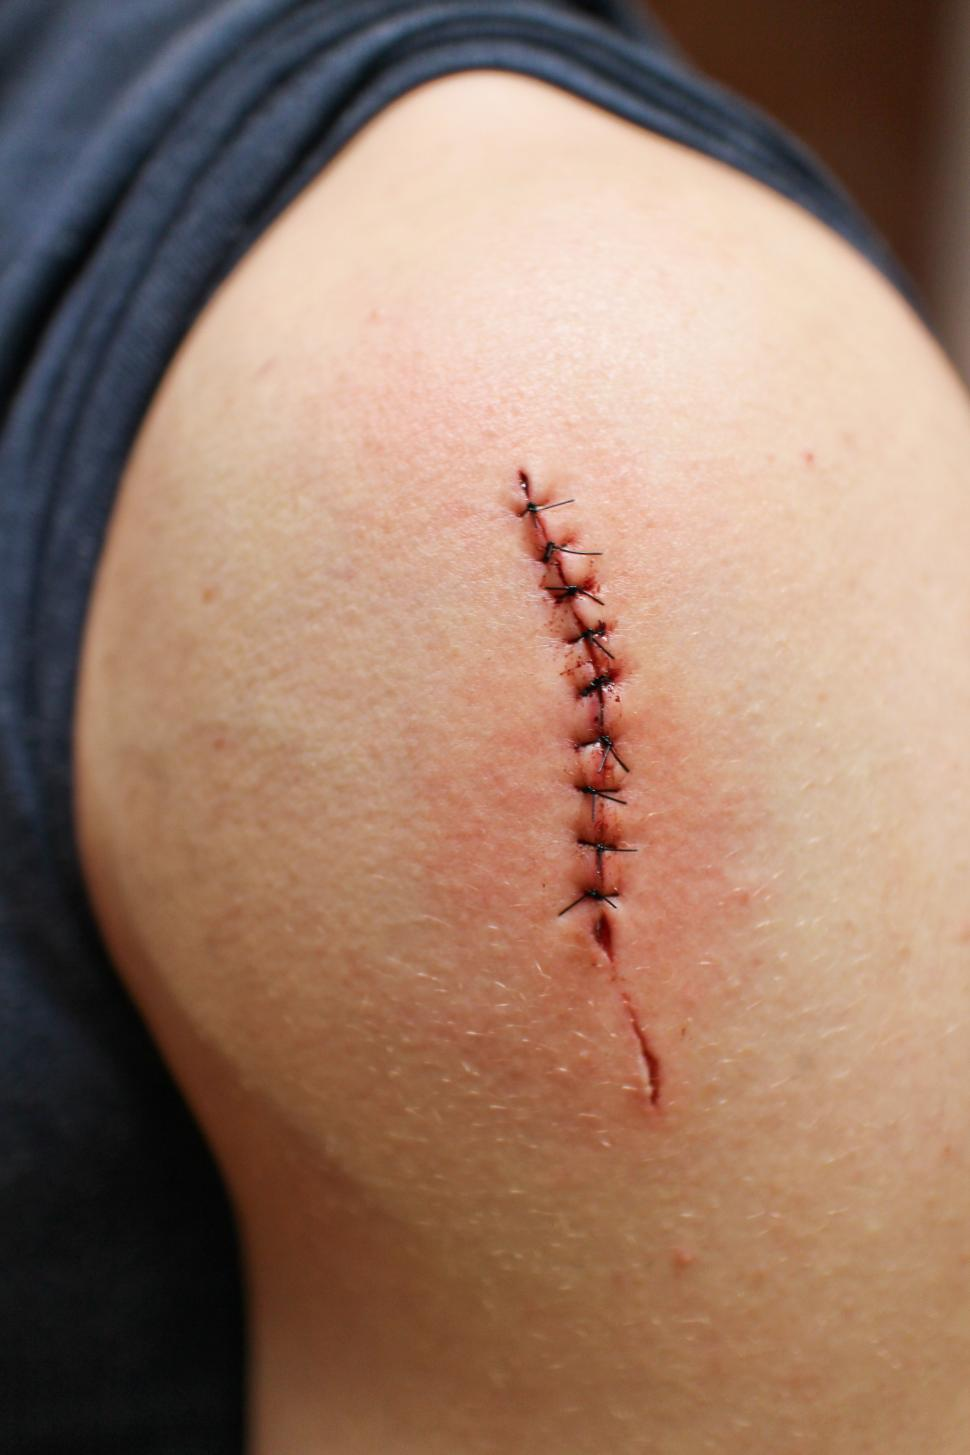 Download Free Stock HD Photo of Stitches on wound Online